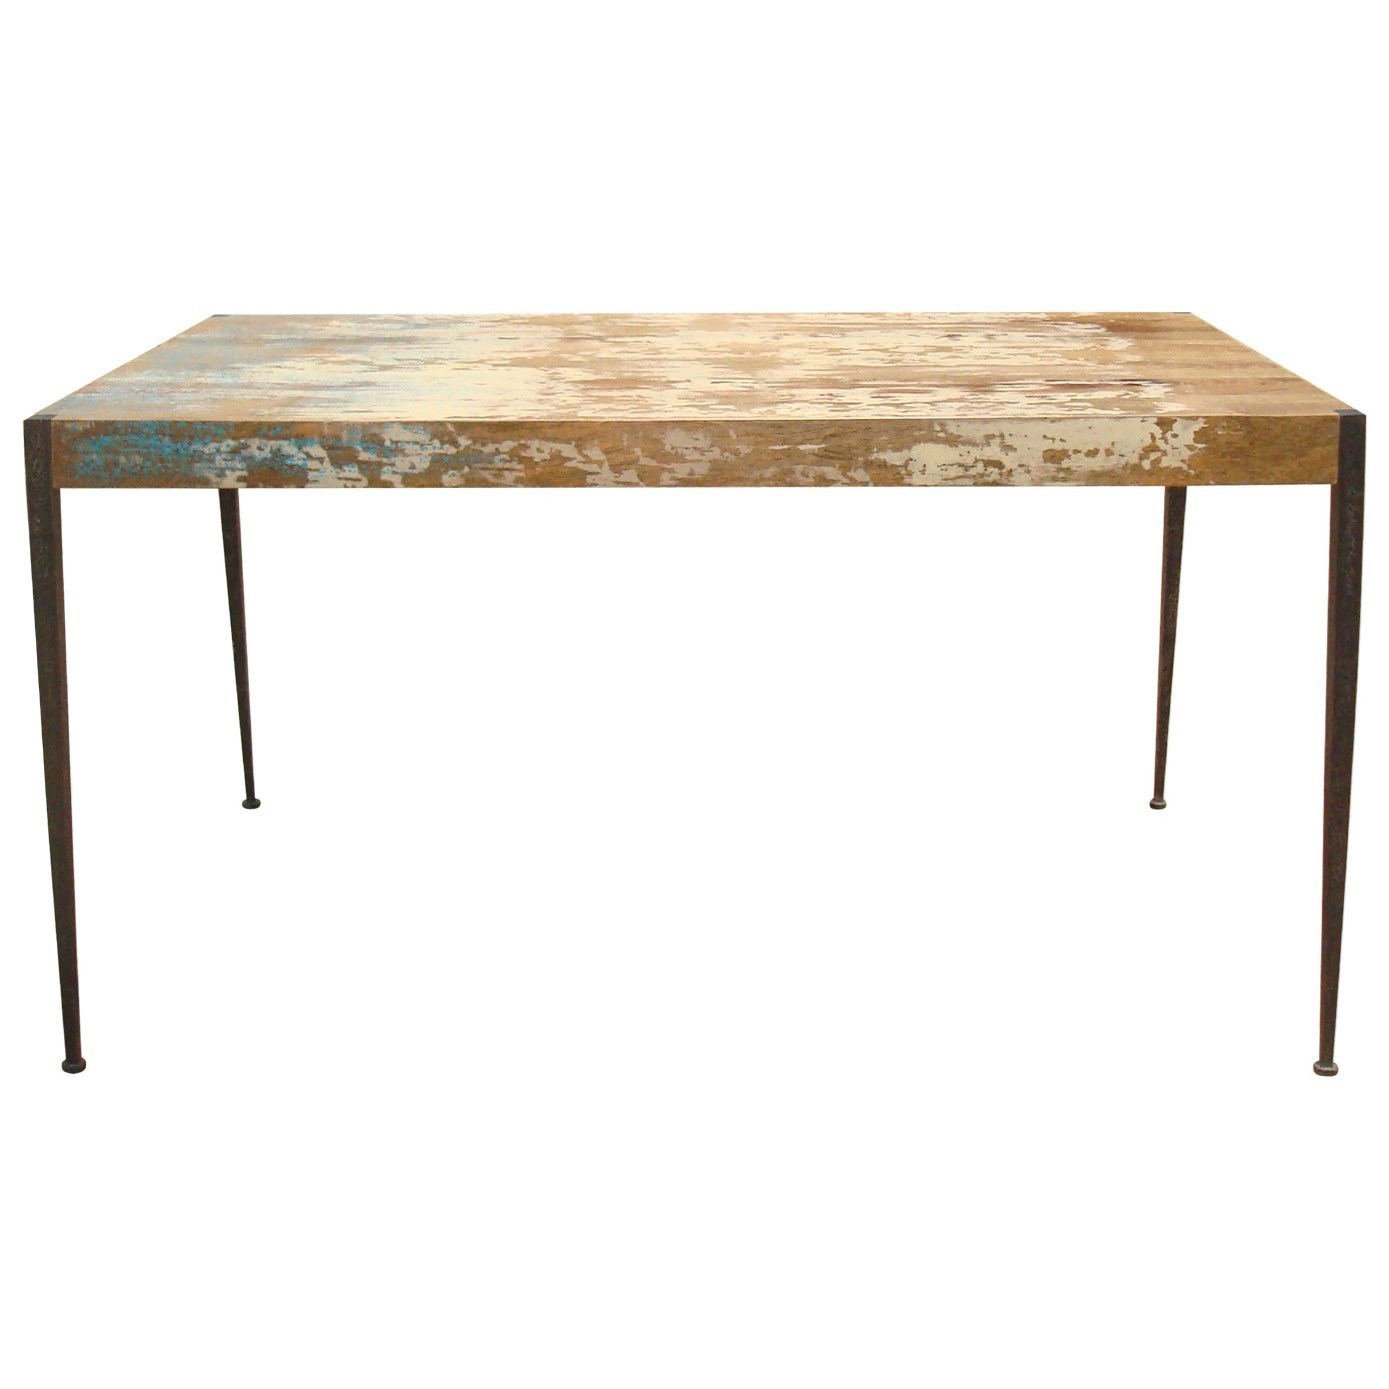 Moe's Home Collection Astoria  Dining Table   - Item Number: AX-1000-37